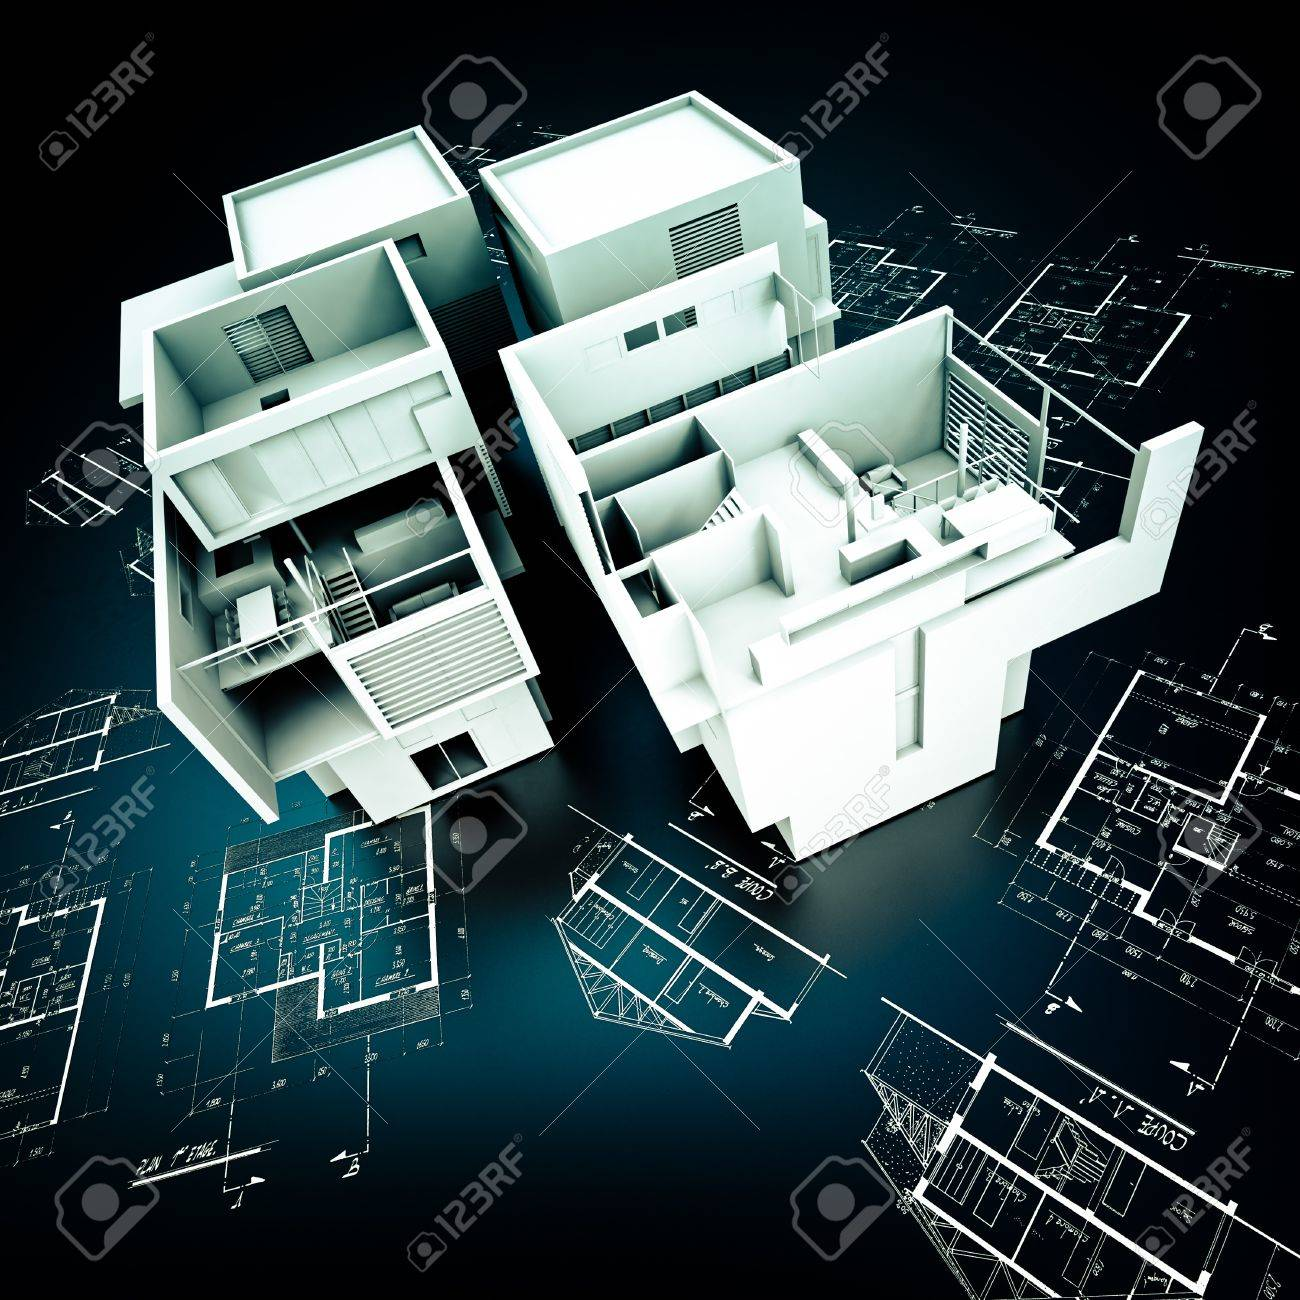 3d rendering of a modern design building on top of blueprints 3d rendering of a modern design building on top of blueprints in white and black stock malvernweather Images